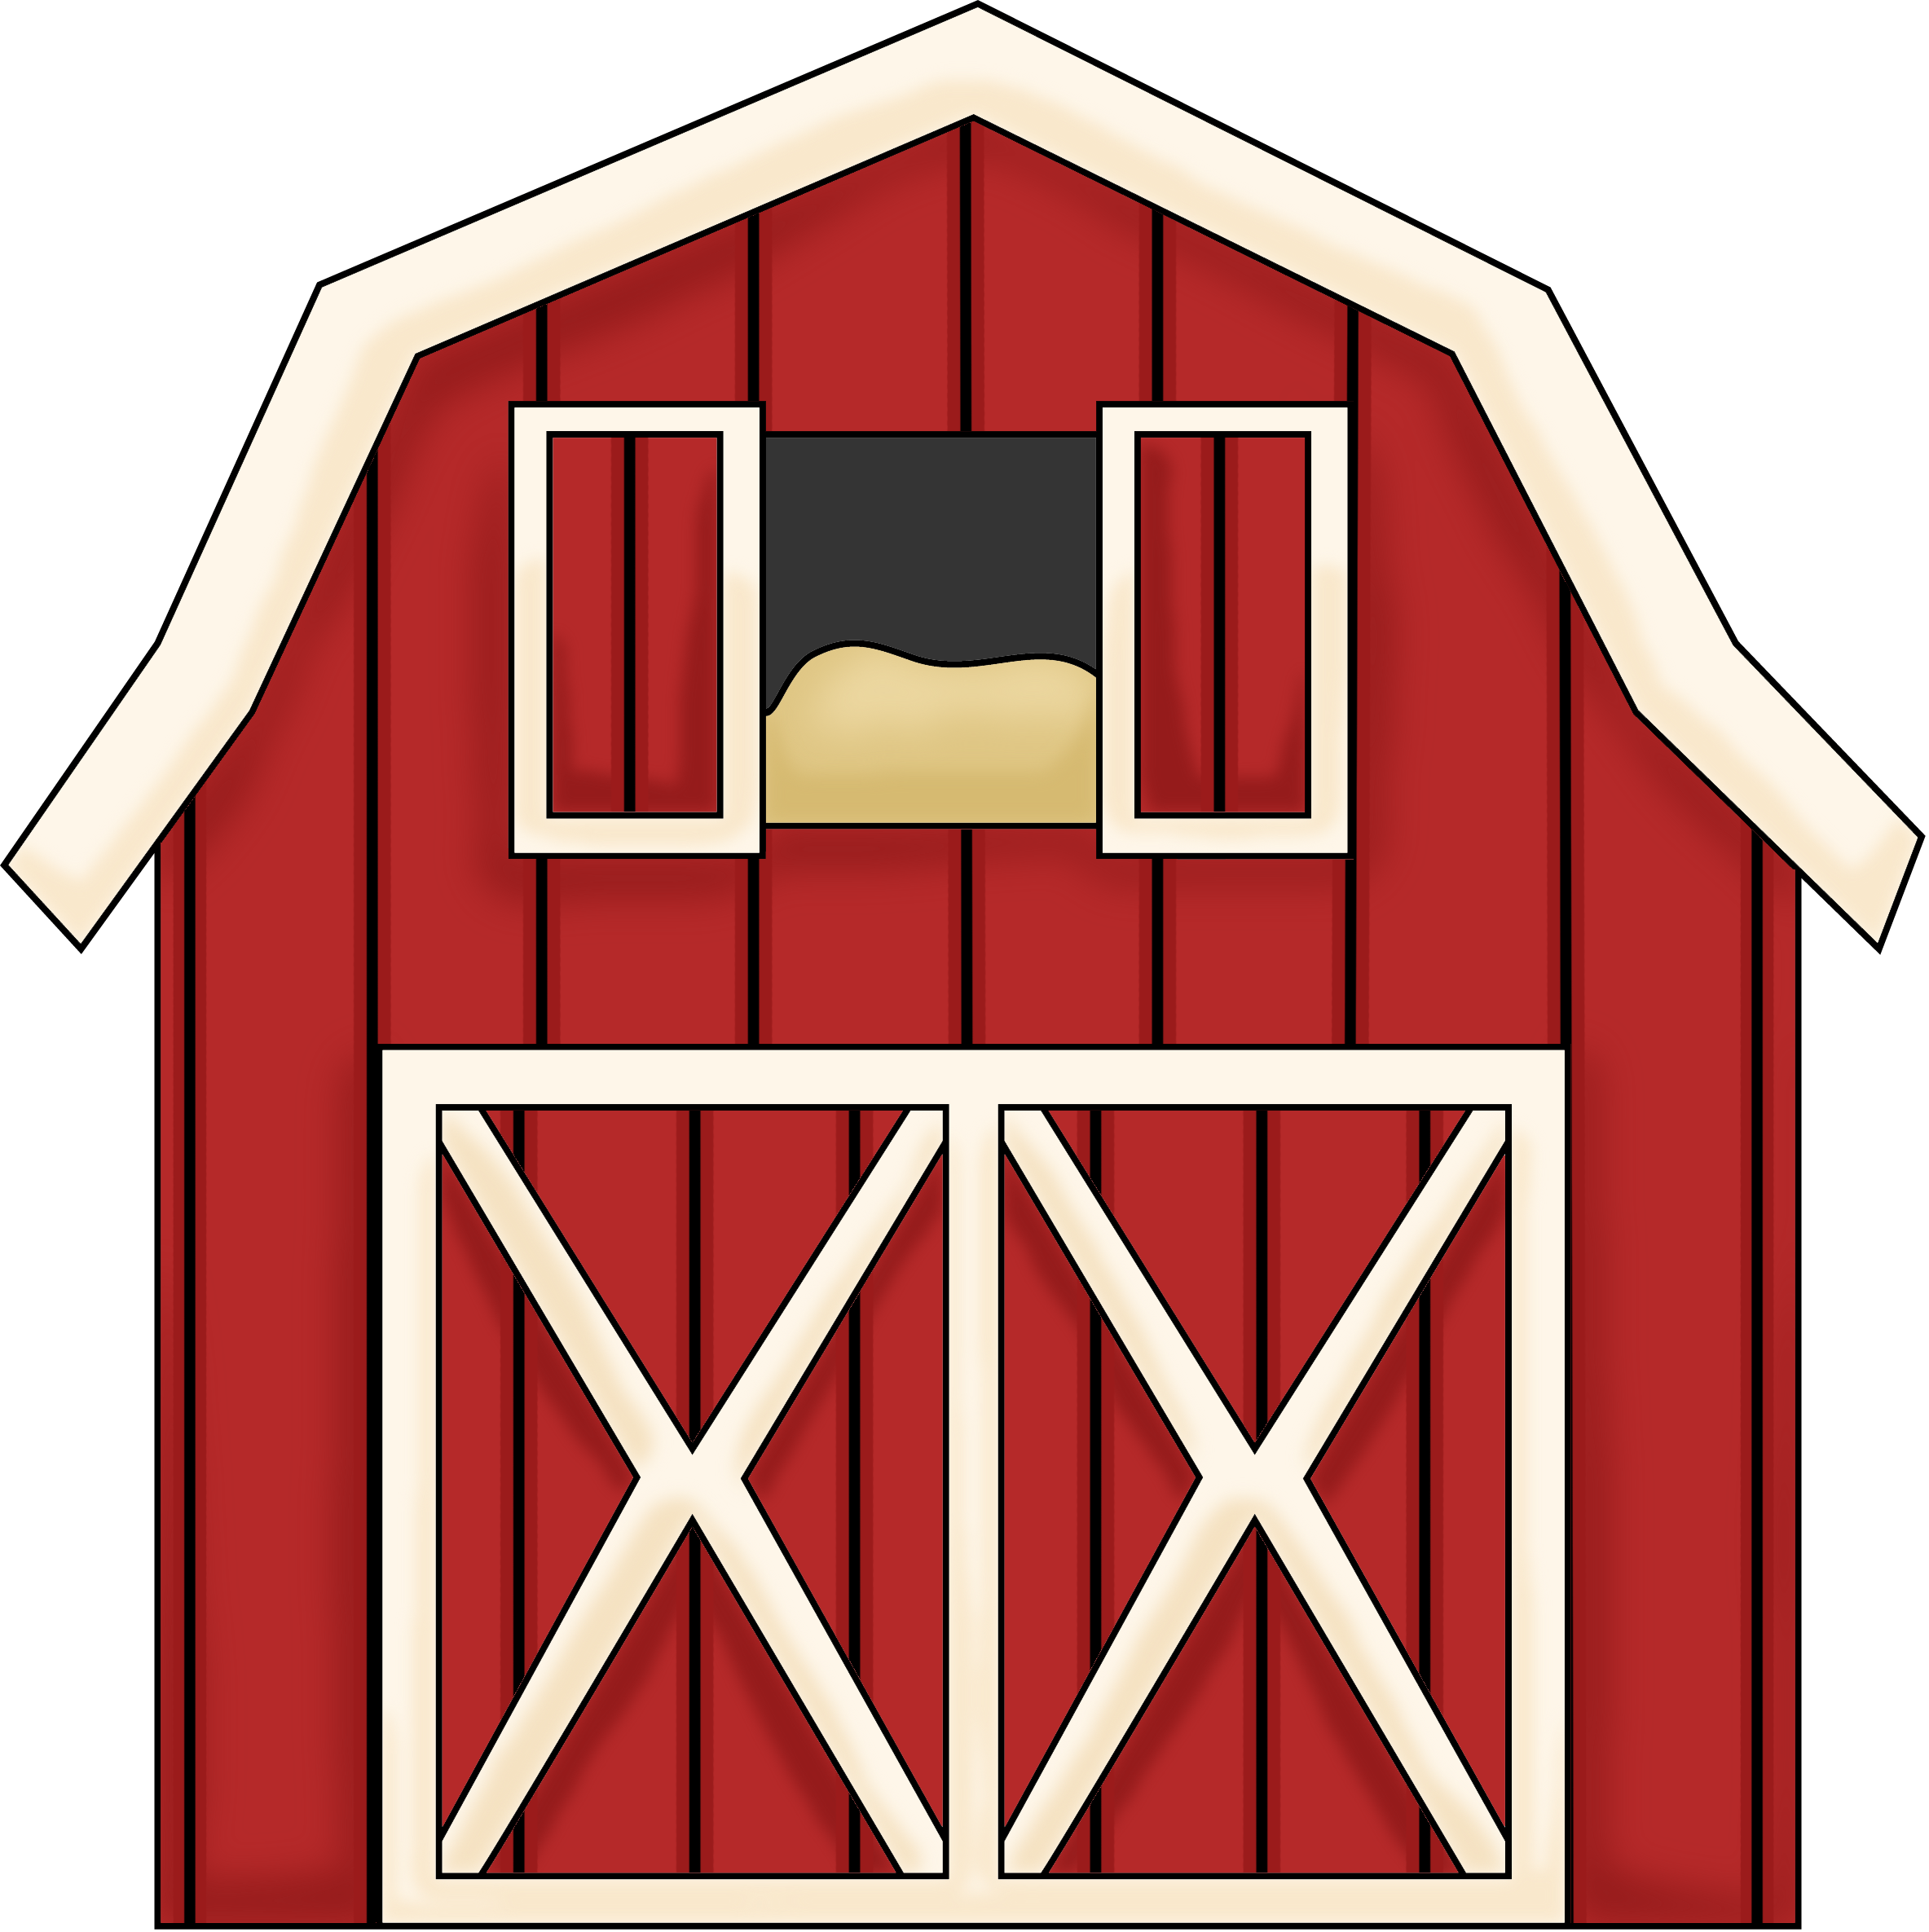 Barn color